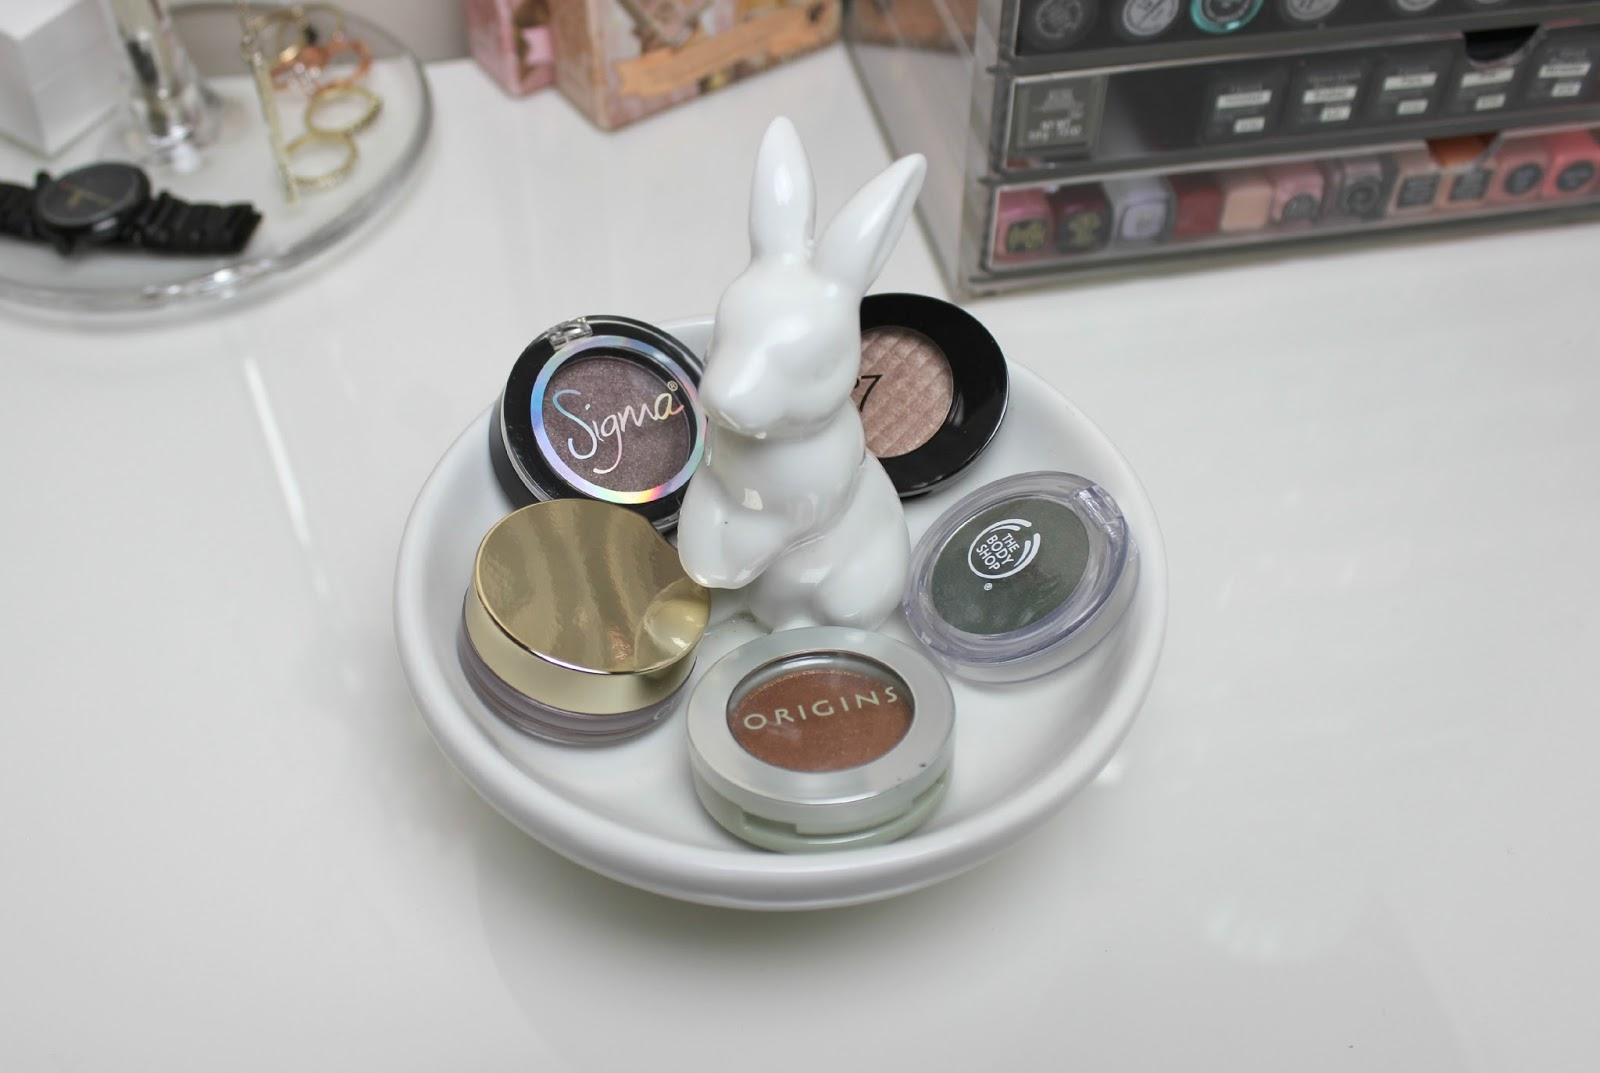 A picture of individual eyeshadows in a white rabbit jewellery dish